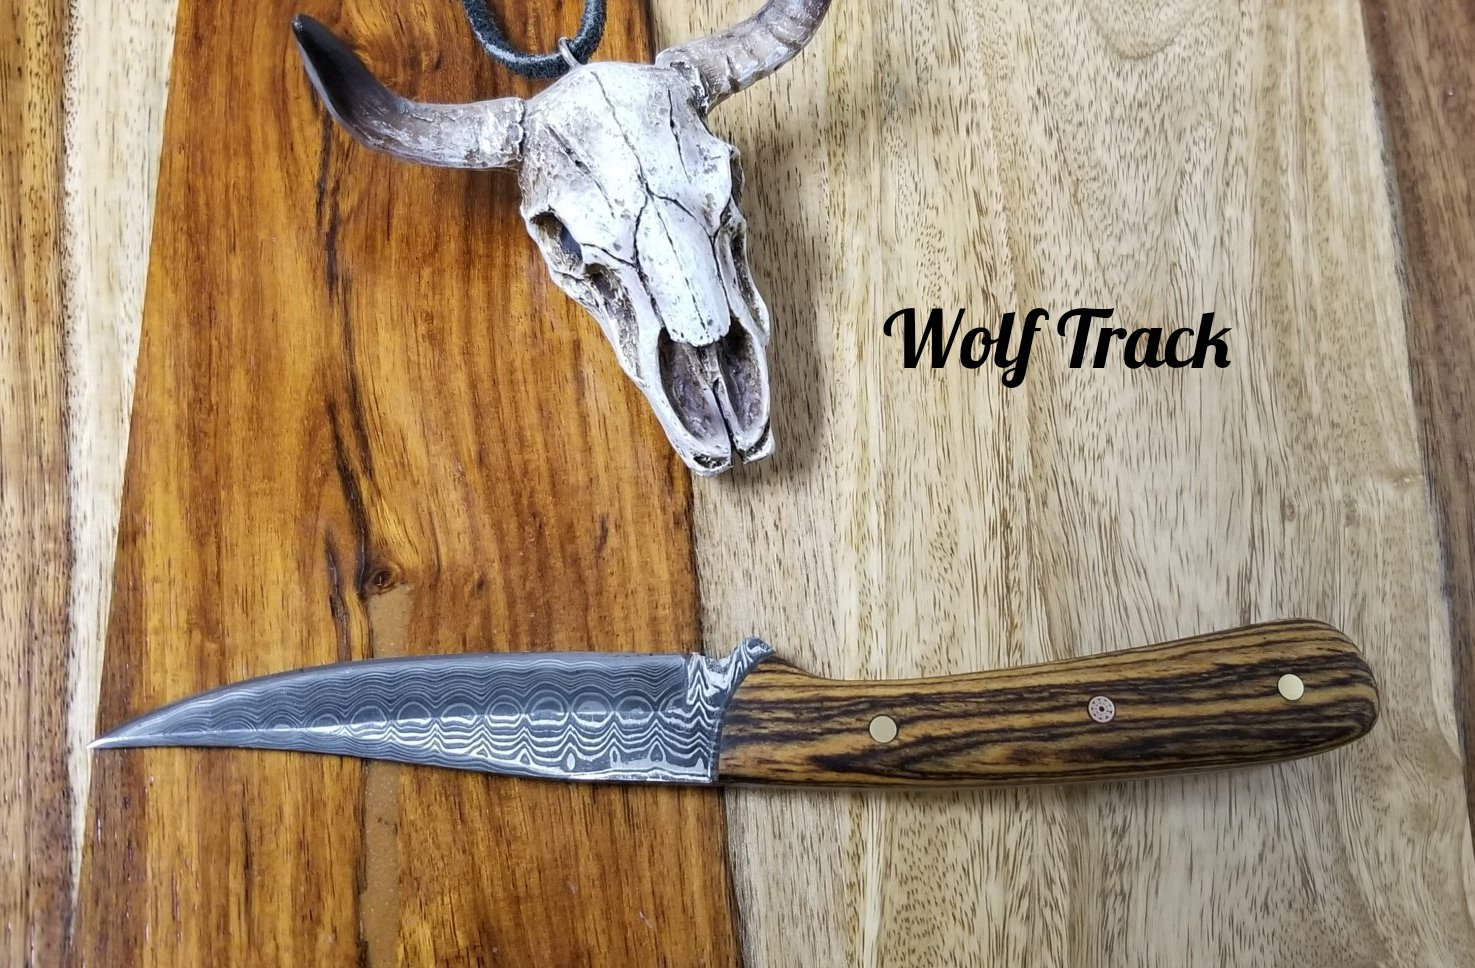 Wolf Track Damascus Custom Knife - WT231DG